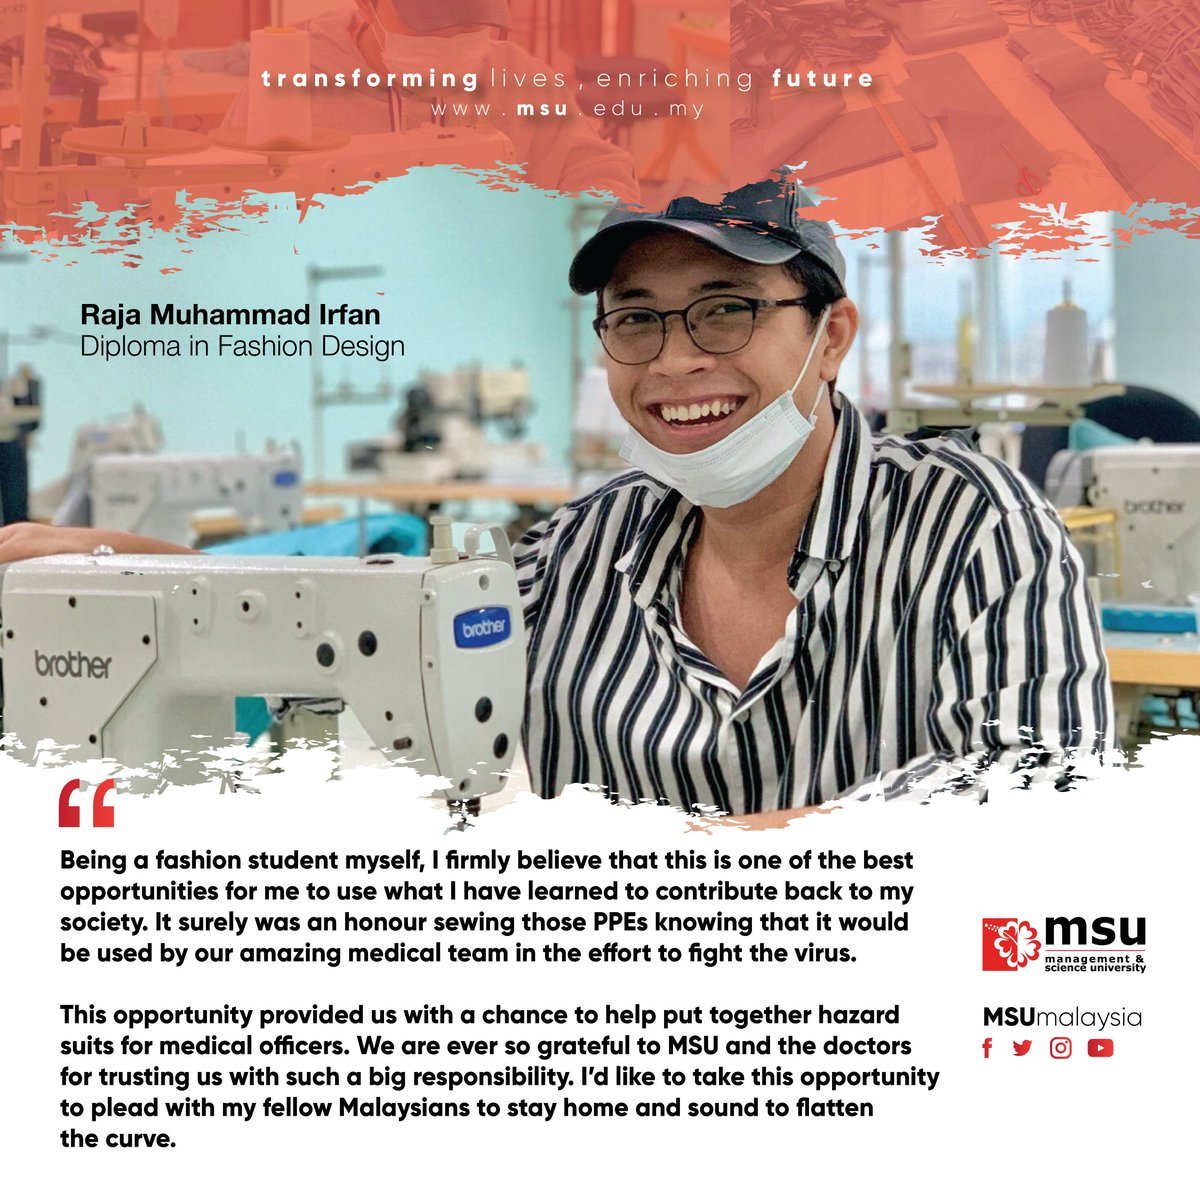 Msu Malaysia On Twitter As The Local Fashion Designers Come Together To Sew And Supply Ppe Suits For Our Frontline Heroes Msumalaysia Fashion Design Students Have Volunteered To Do Their Part